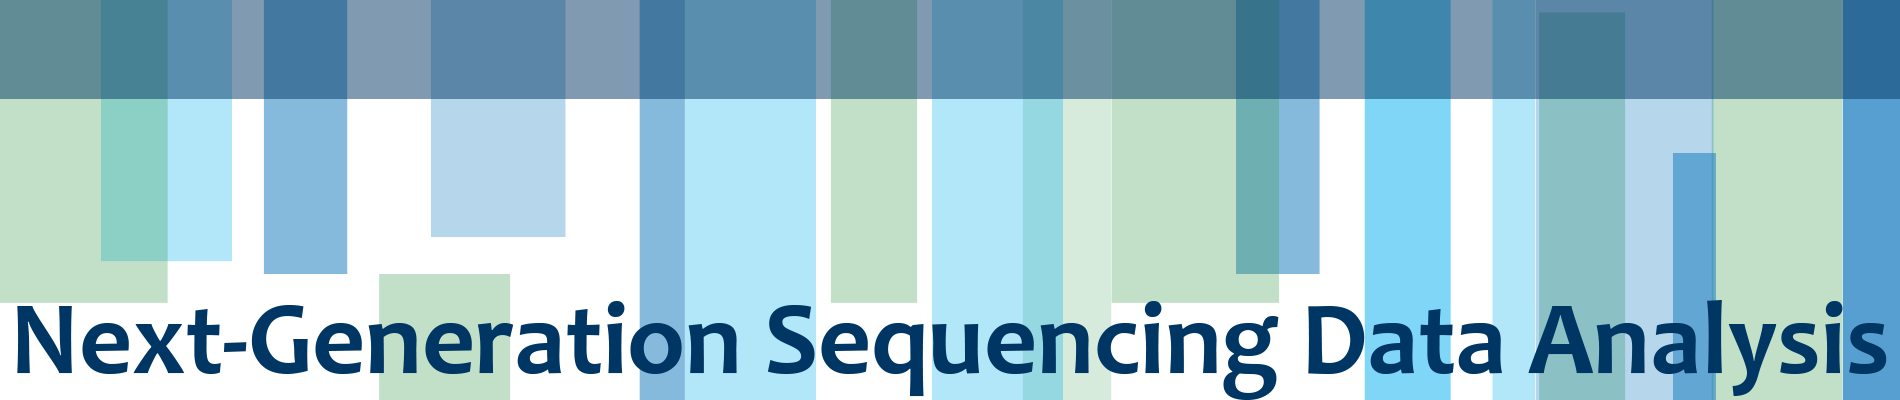 Next generation sequencing data anlysis